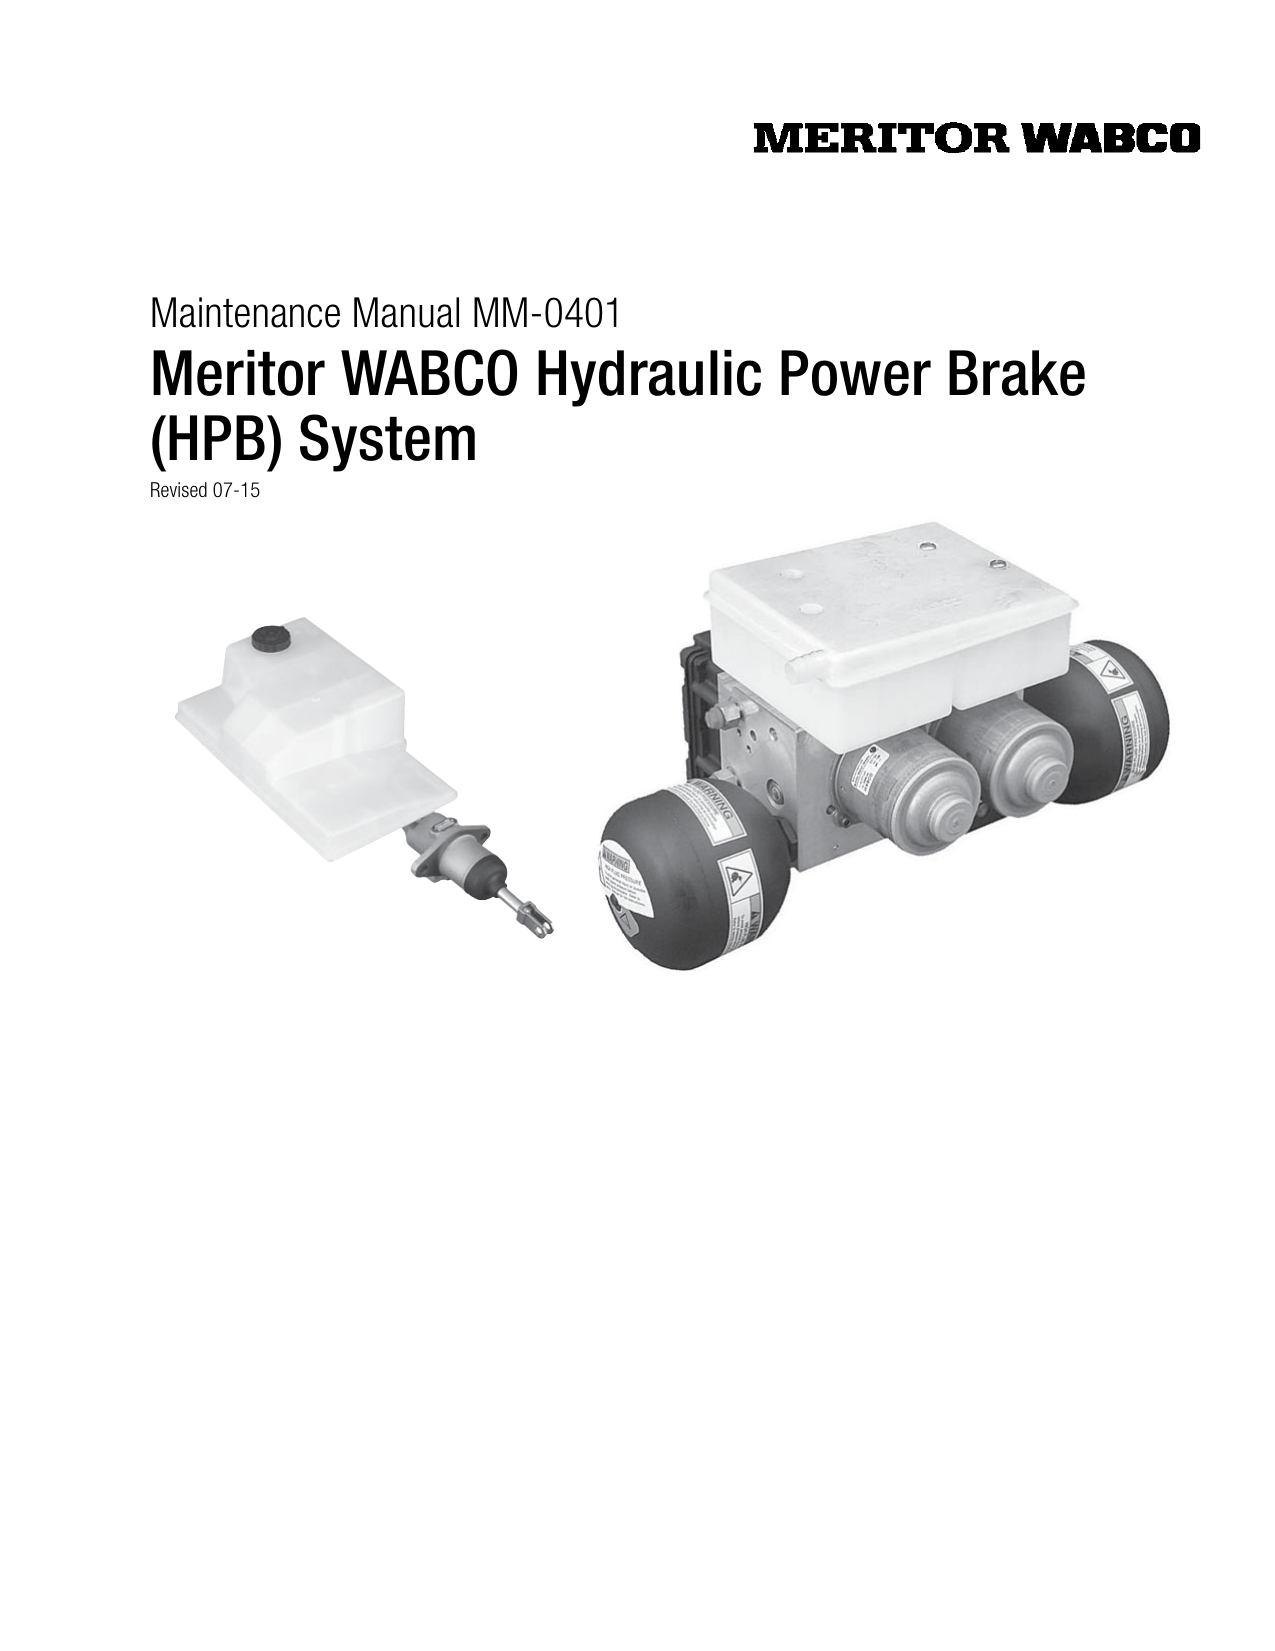 Meritor WABCO Hydraulic Power ke (HPB) System on